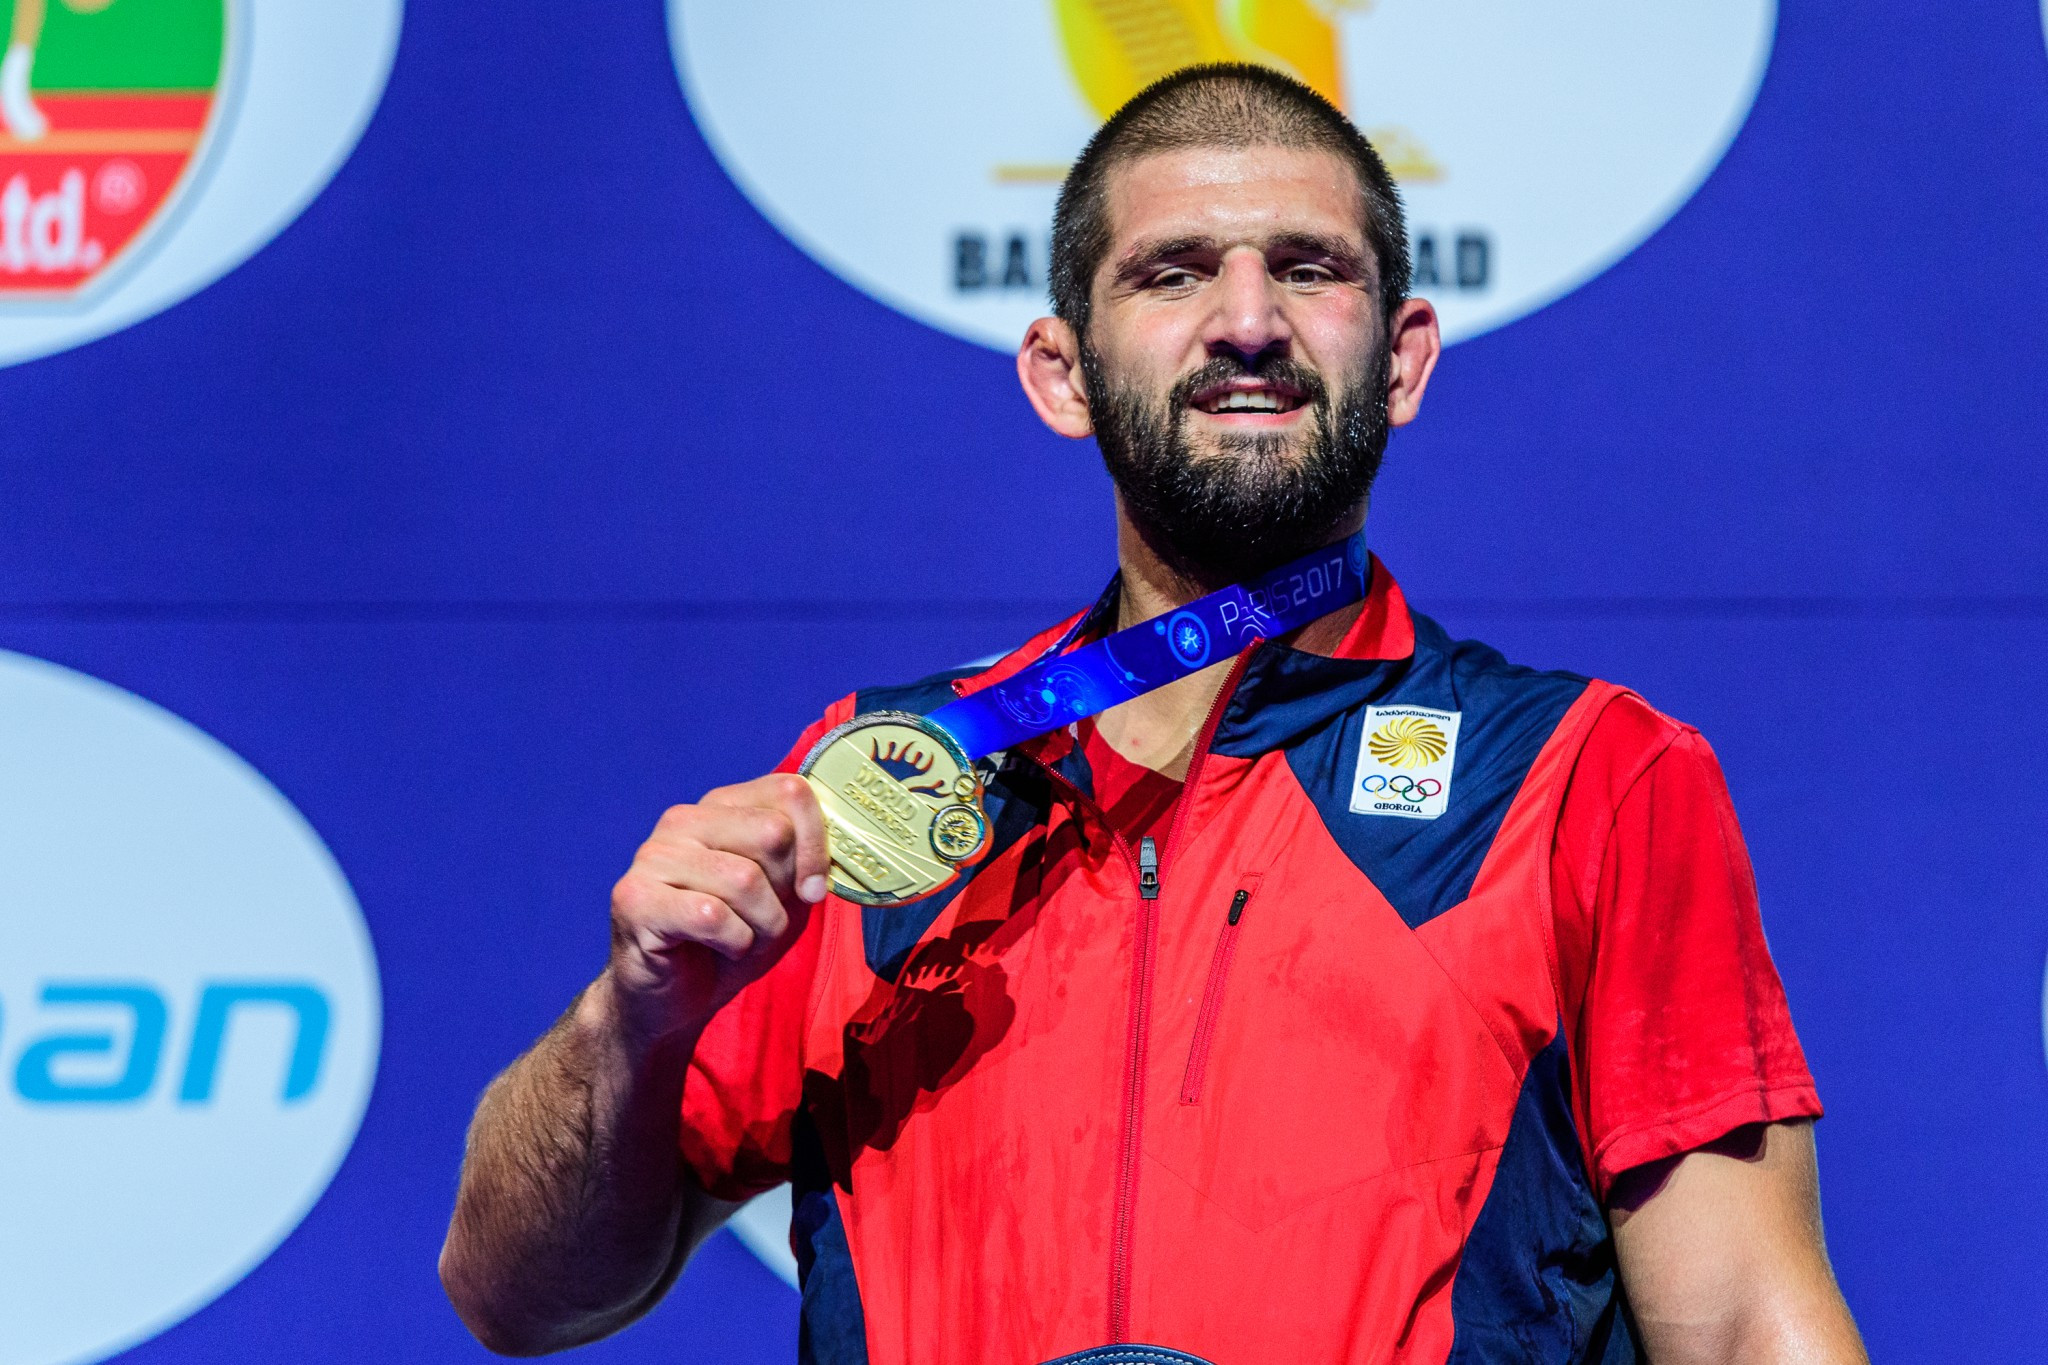 Olympic gold medallist stunned in thriller at UWW World Championships